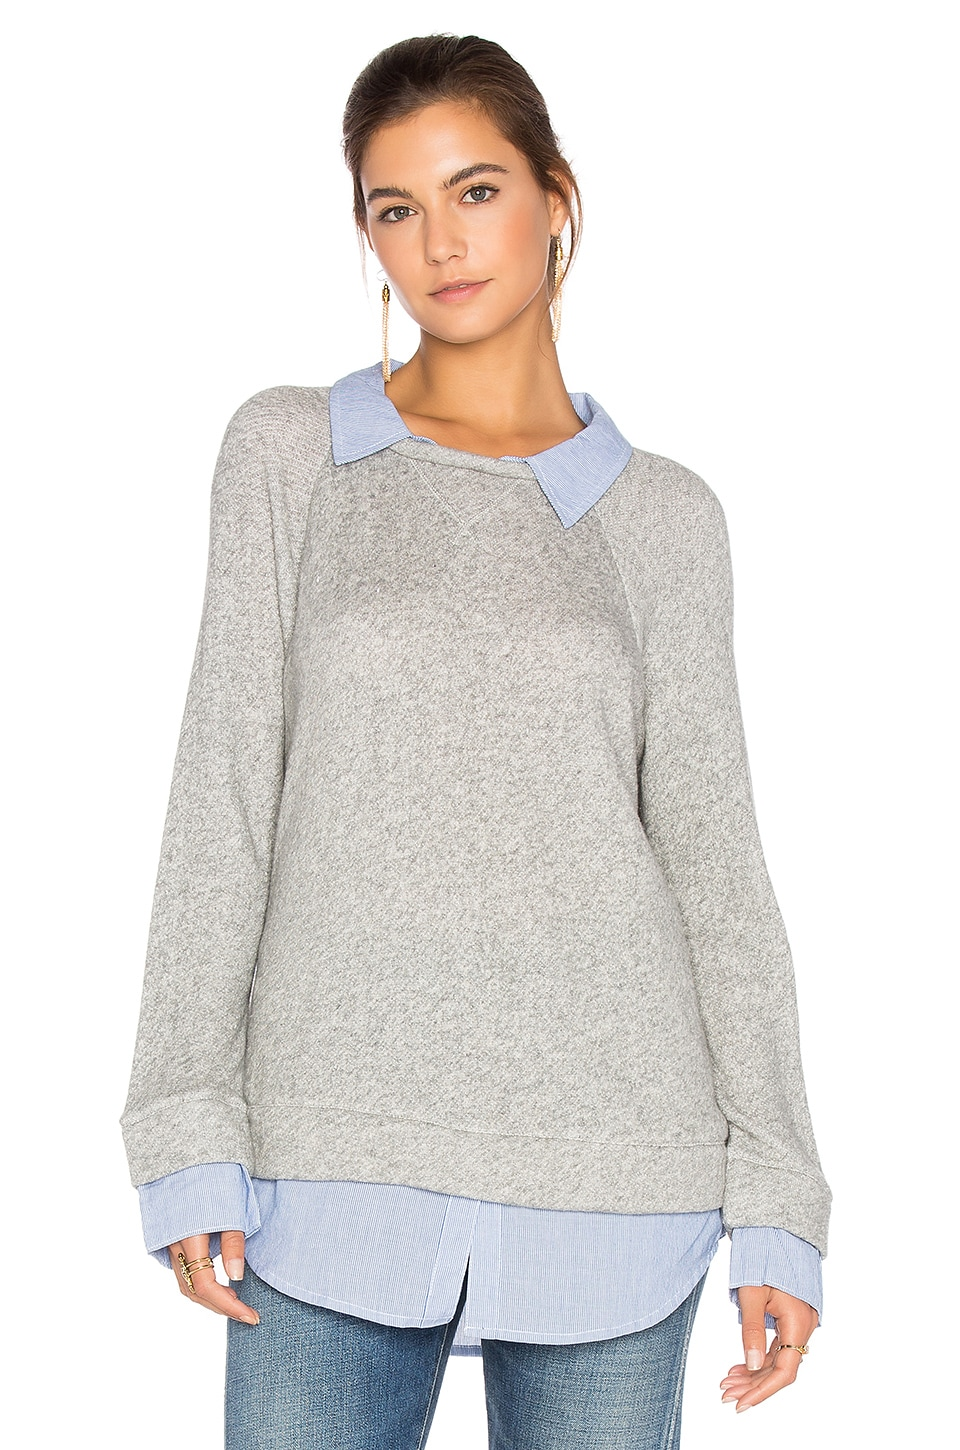 eae857745f7 Soft Joie Diadem Pullover in Heather Grey   Slate Blue